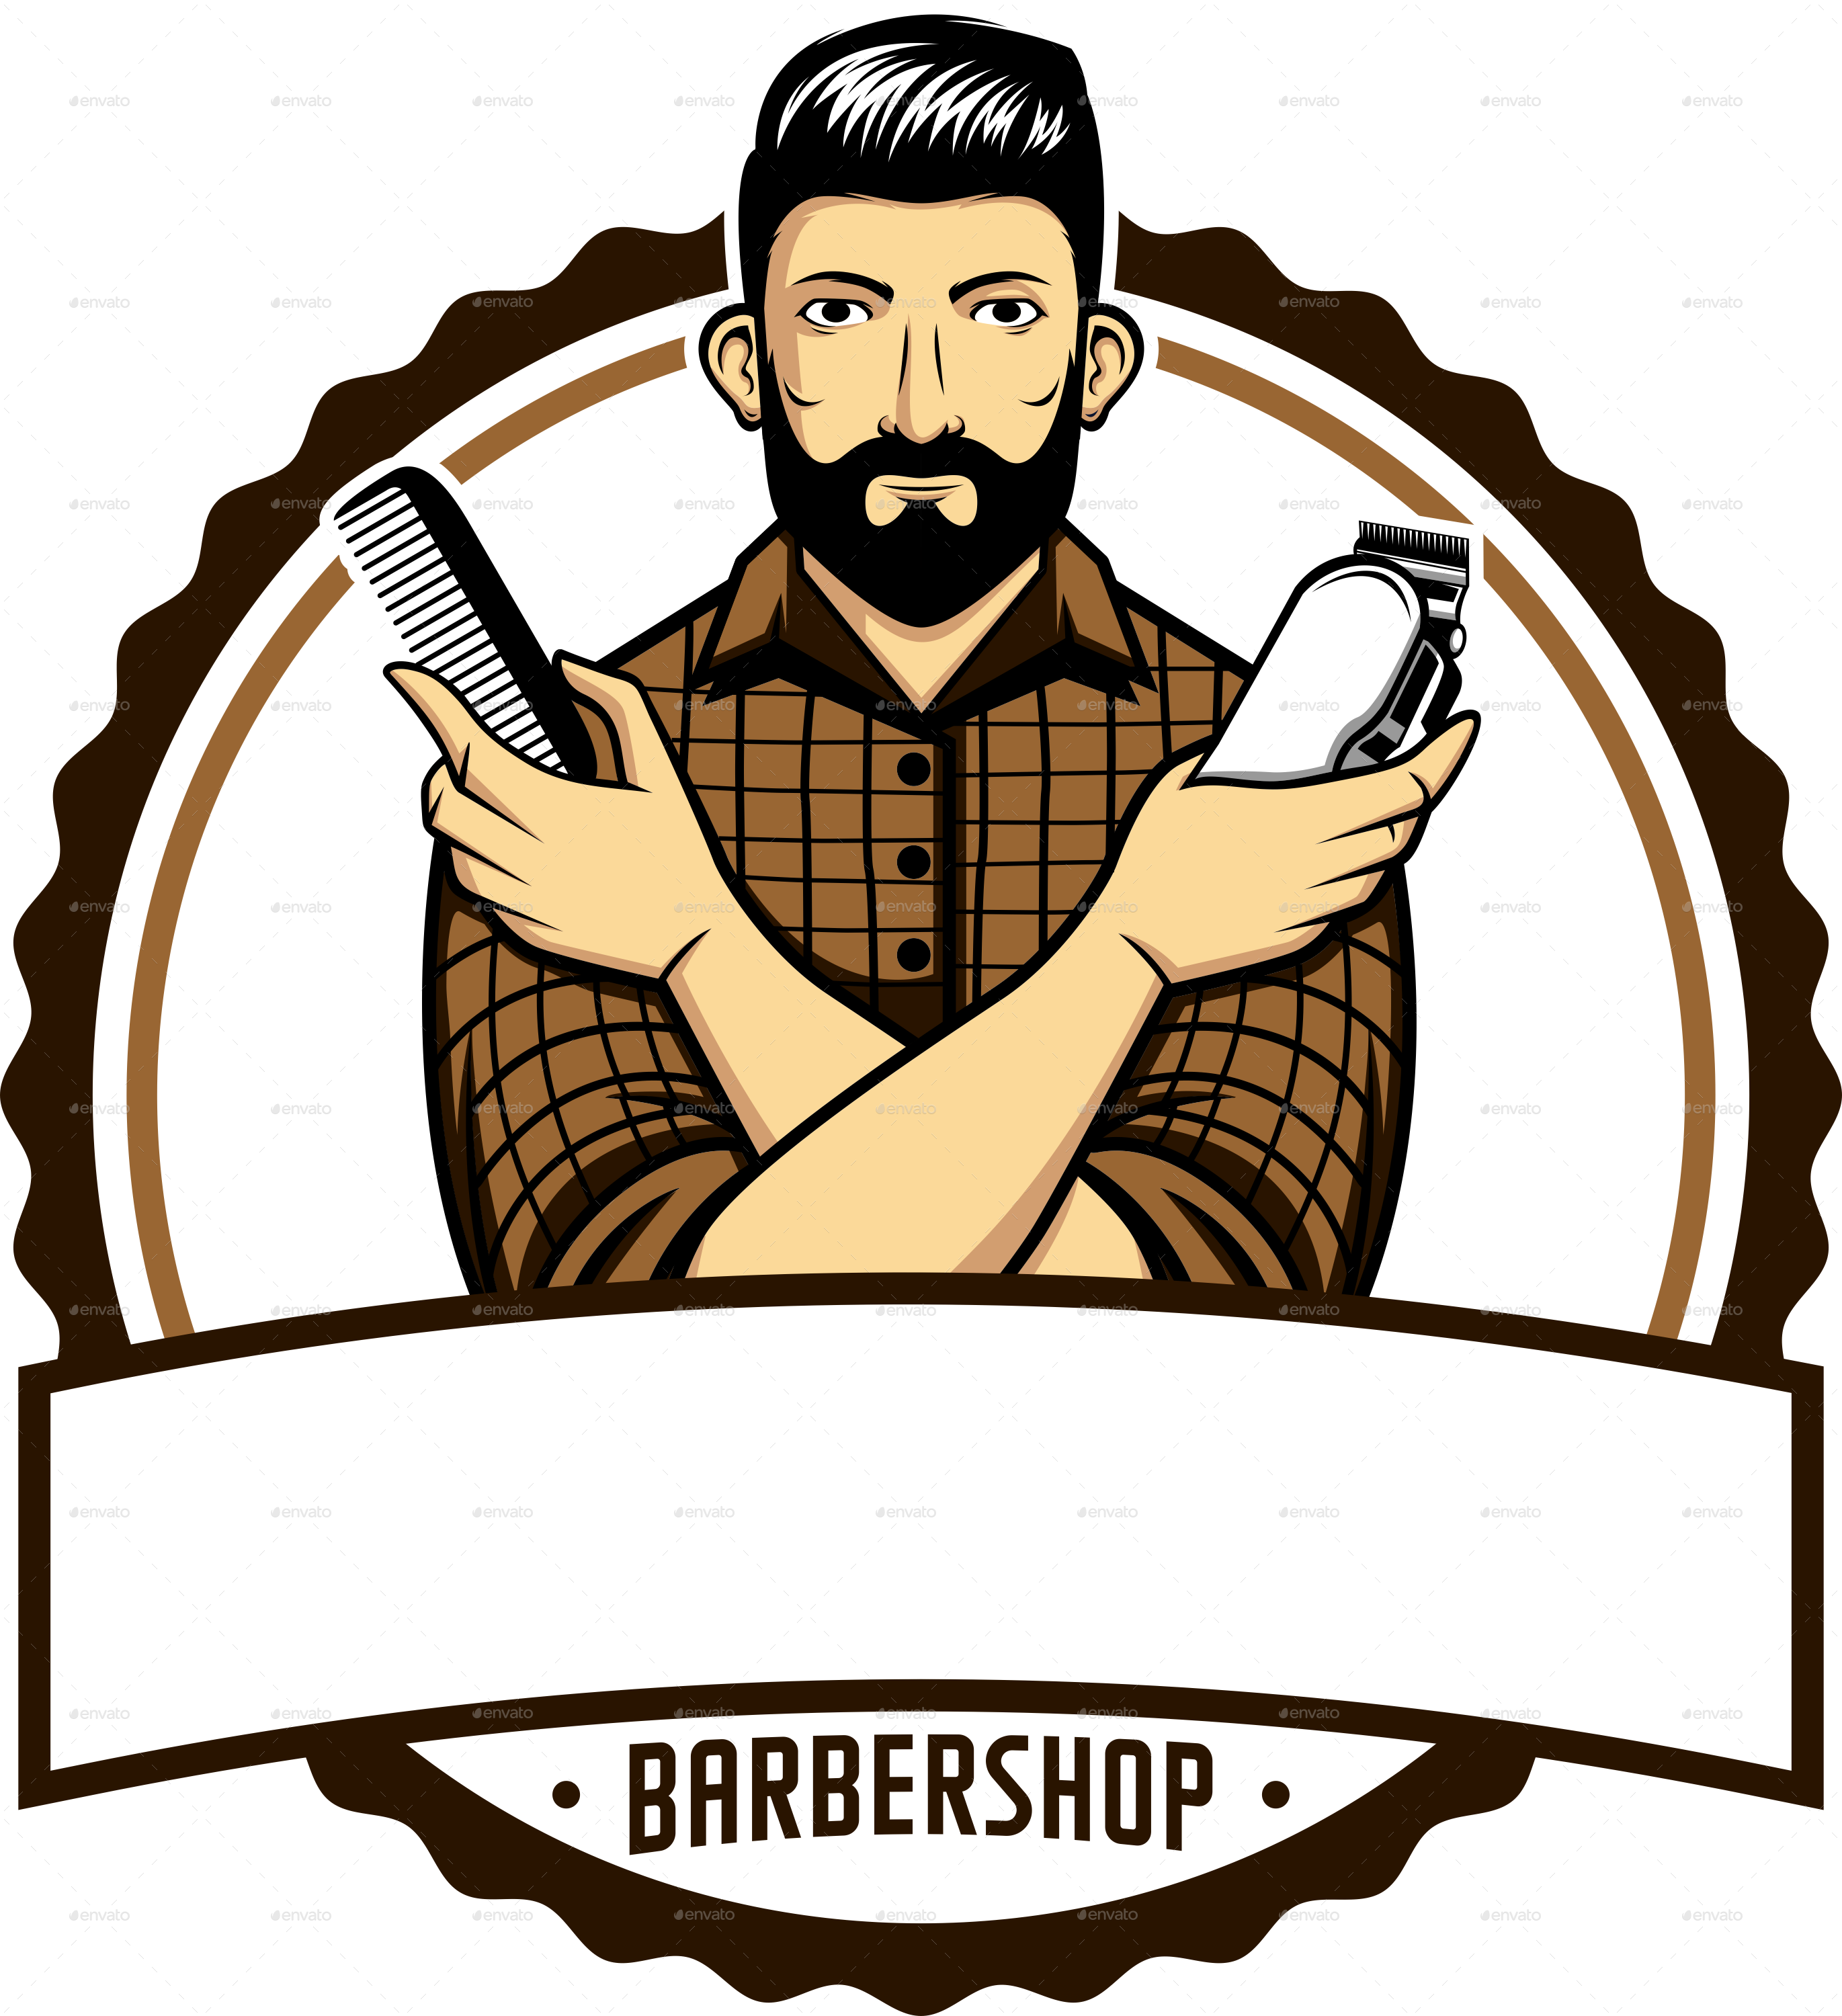 Barbershop vector clipart. Barber shop png transparent